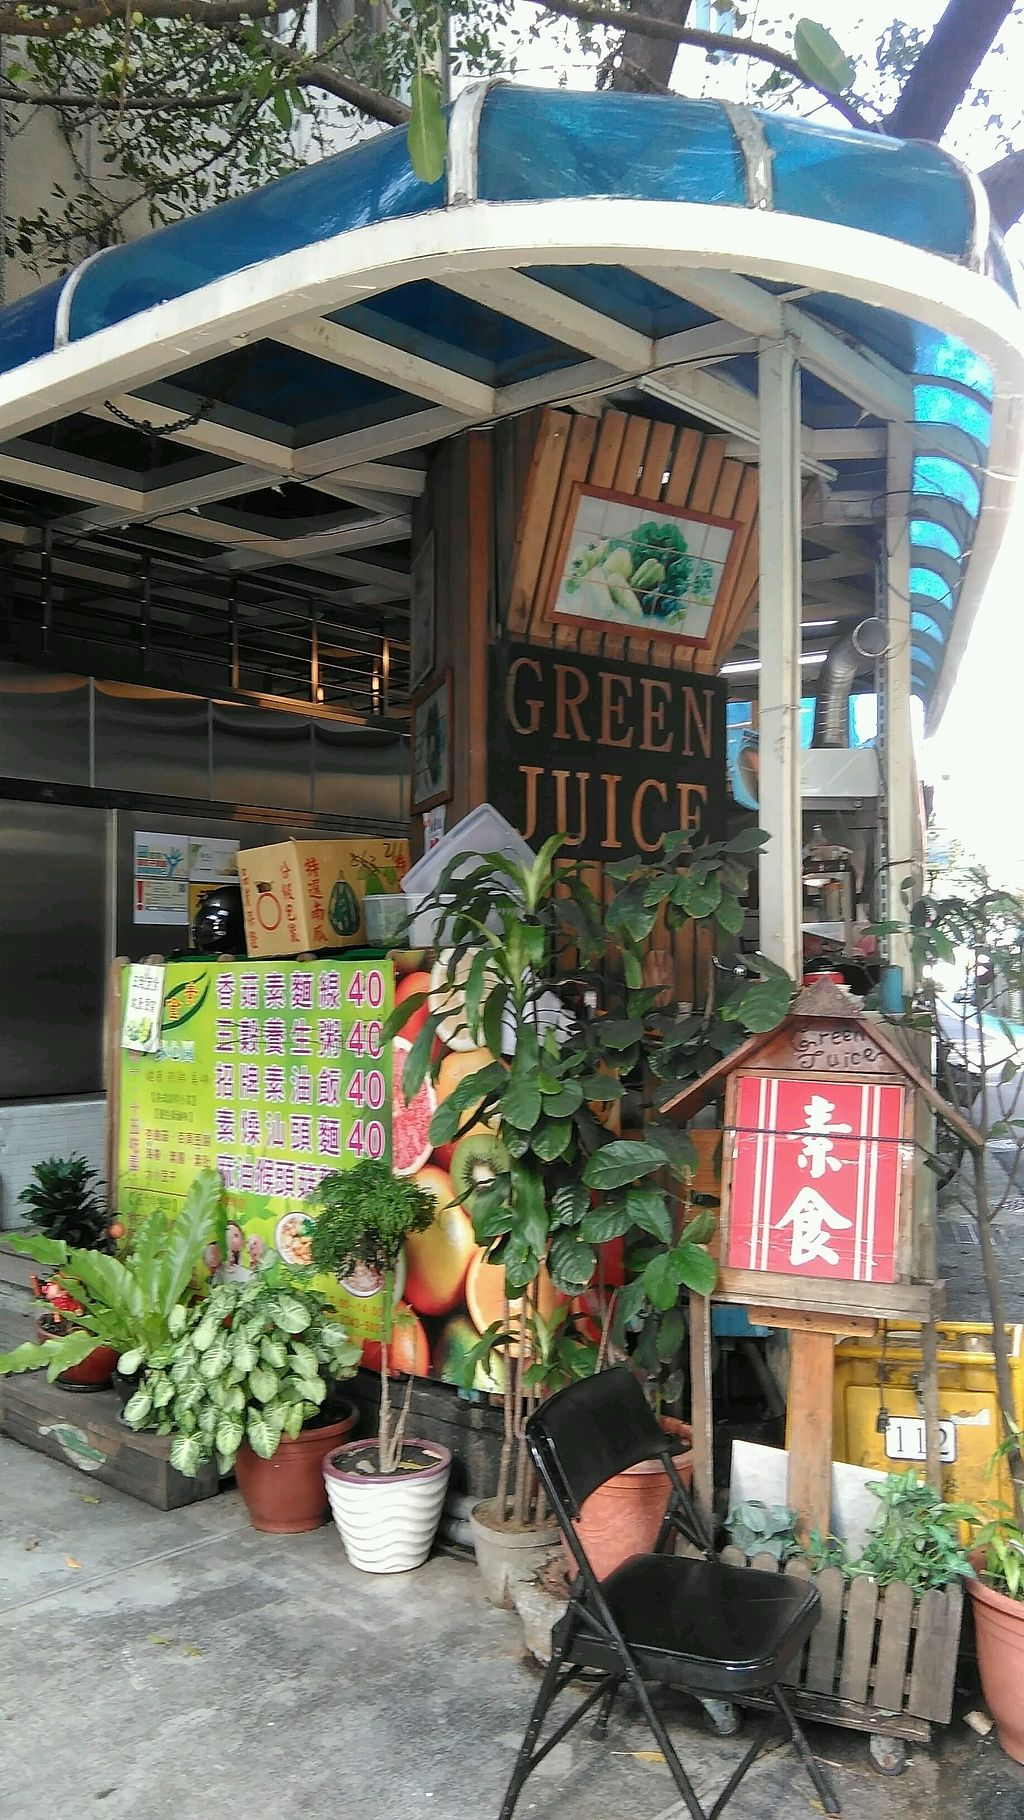 """Photo of Green Juice  by <a href=""""/members/profile/CarinaJ.Rother"""">CarinaJ.Rother</a> <br/>Shop front  <br/> February 16, 2018  - <a href='/contact/abuse/image/109737/360002'>Report</a>"""